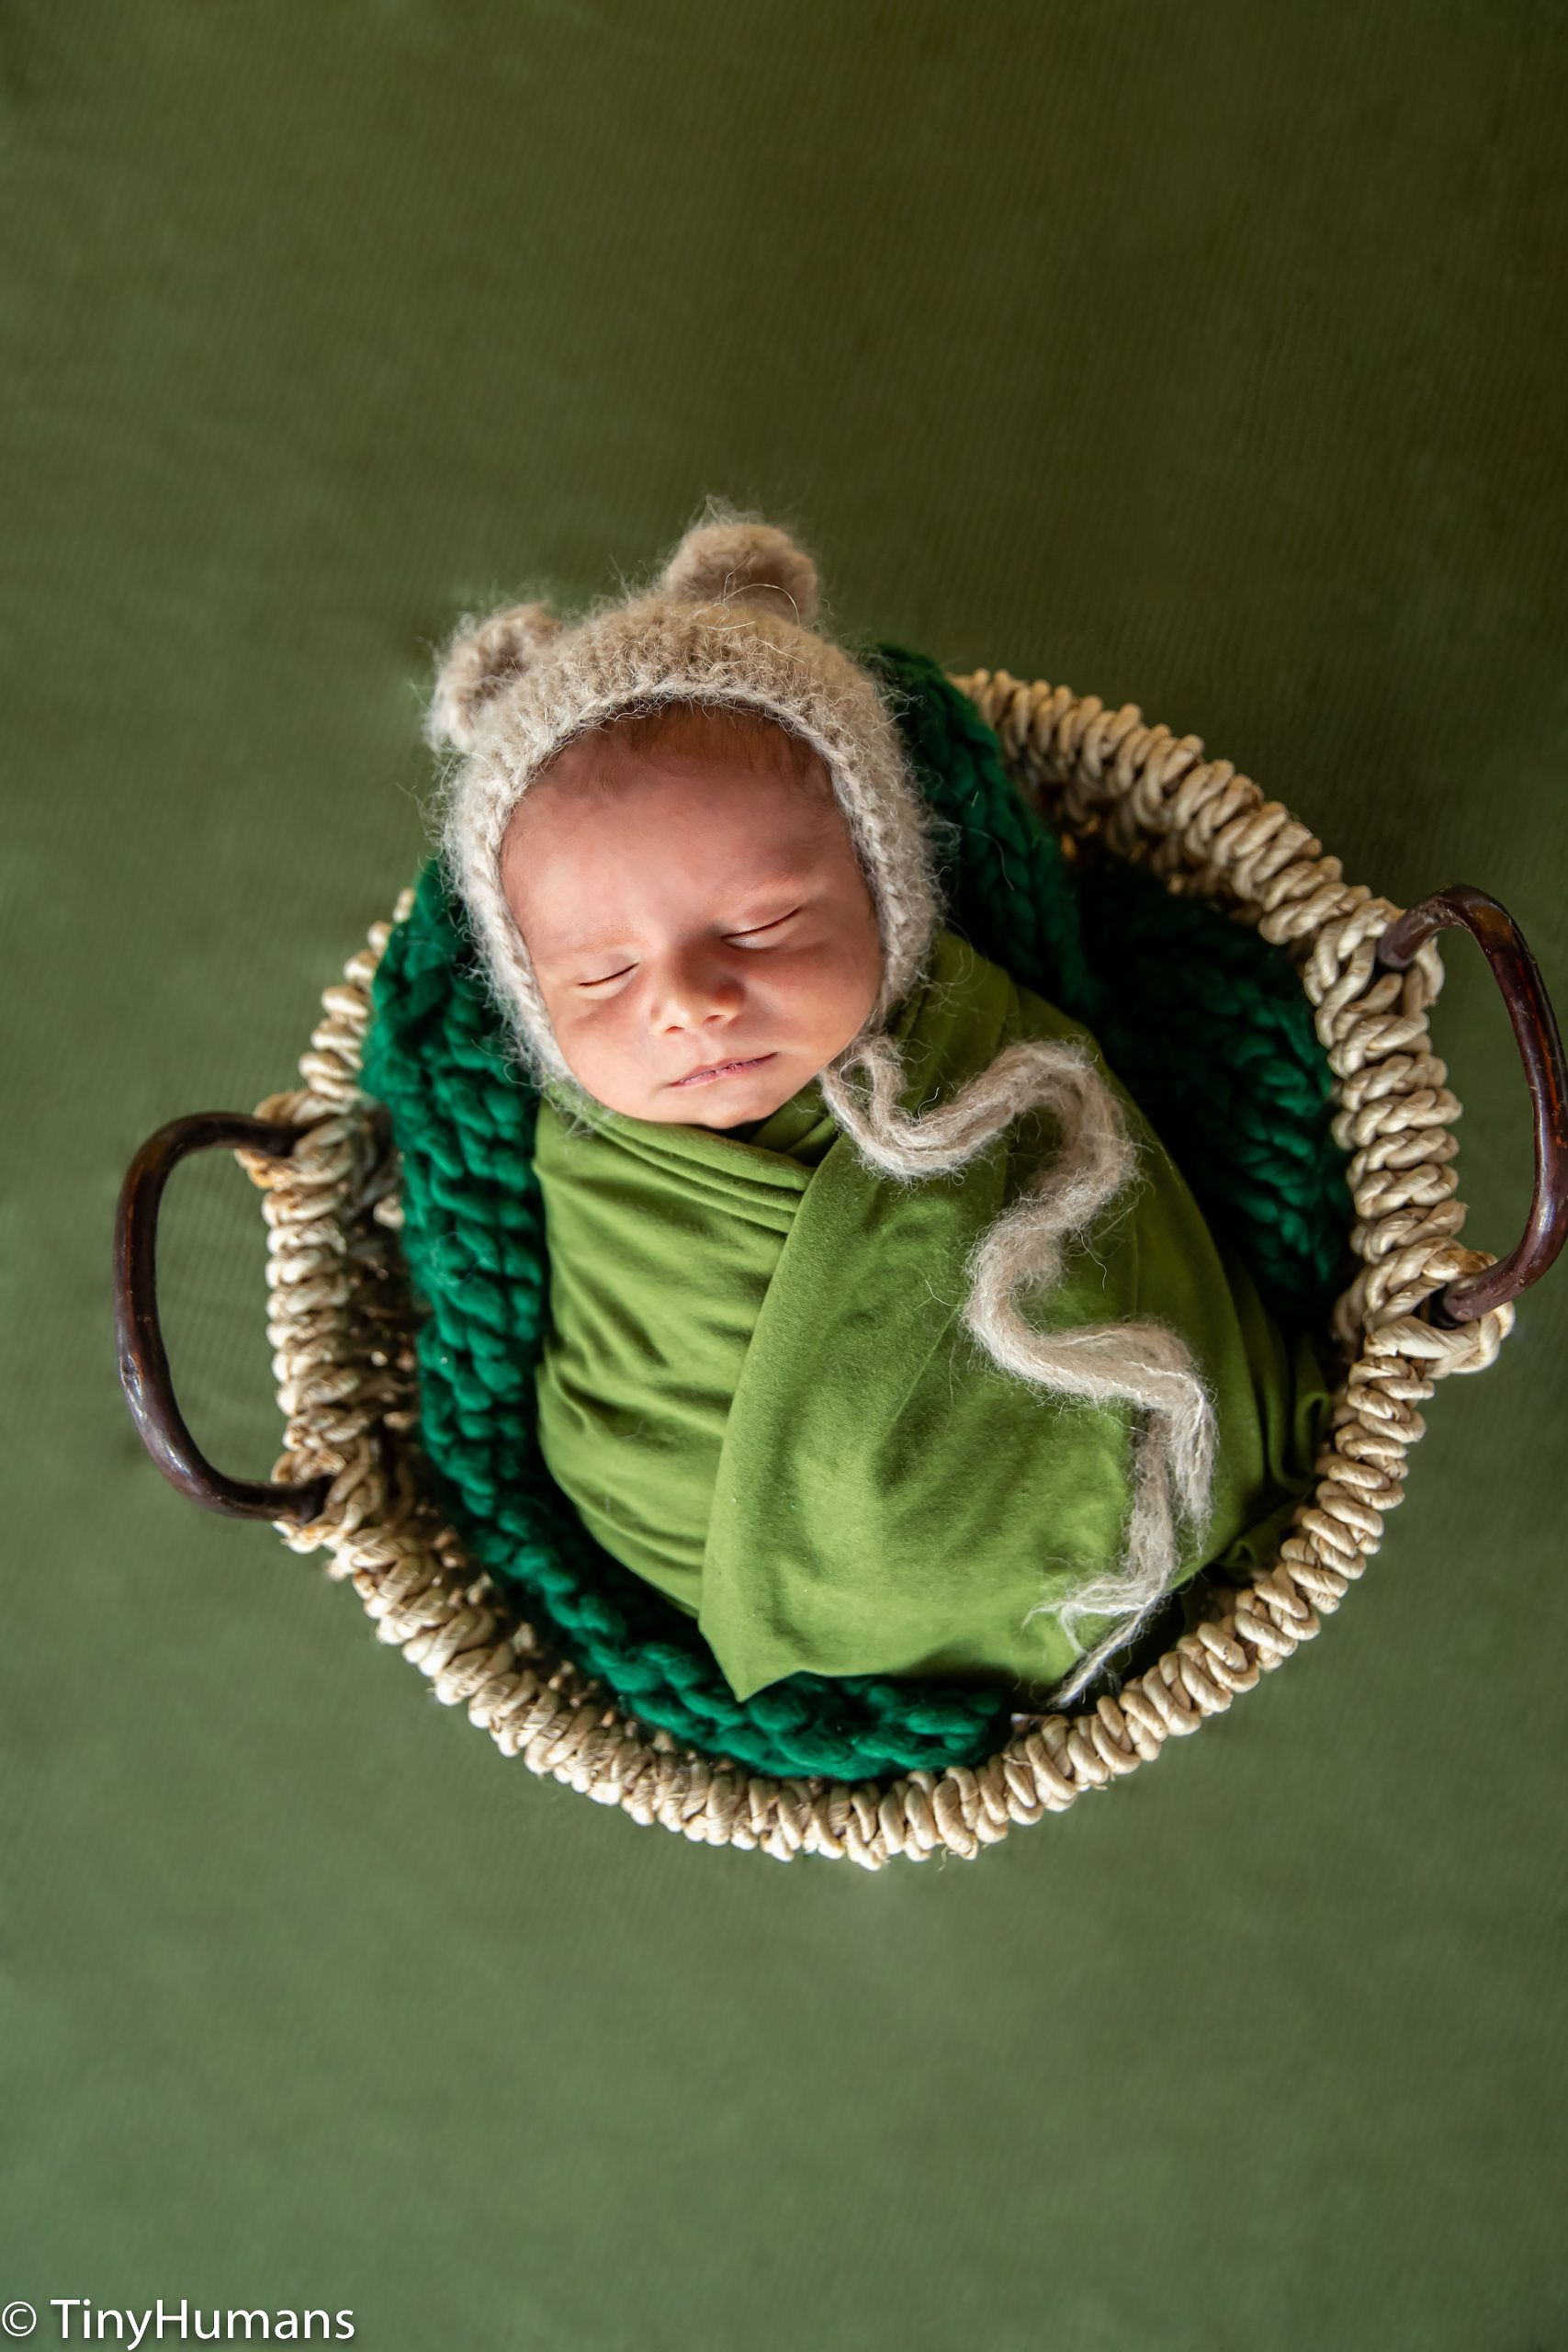 Newborn baby on green wrap and backdrop